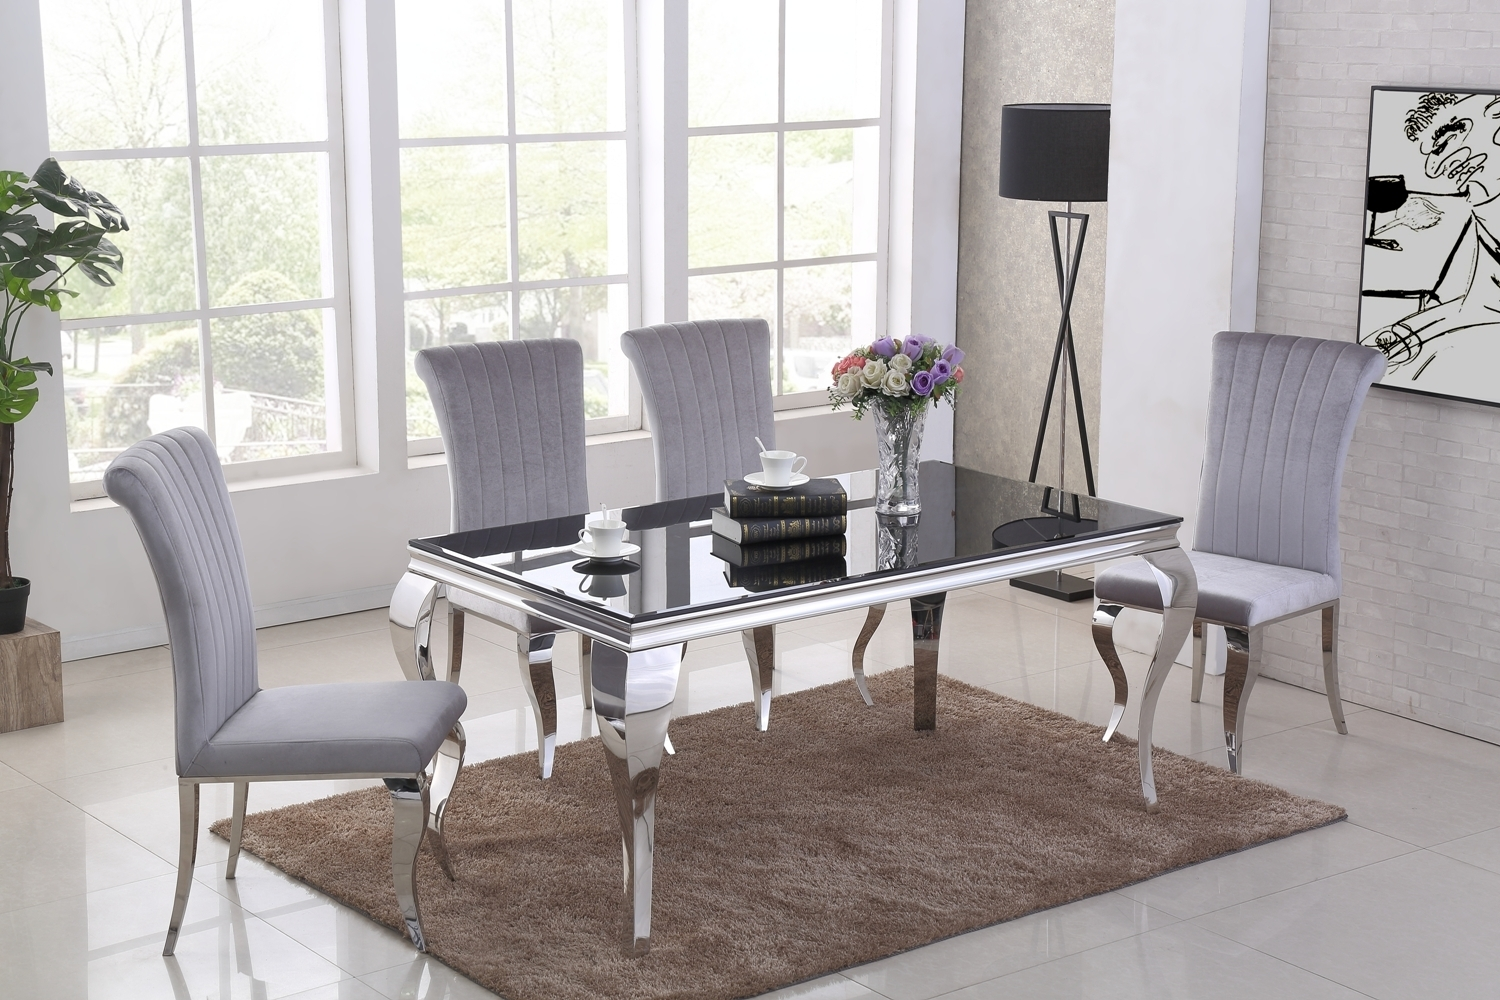 160cm Black Glass Dining Table Amp 6 Grey Velvet Chairs